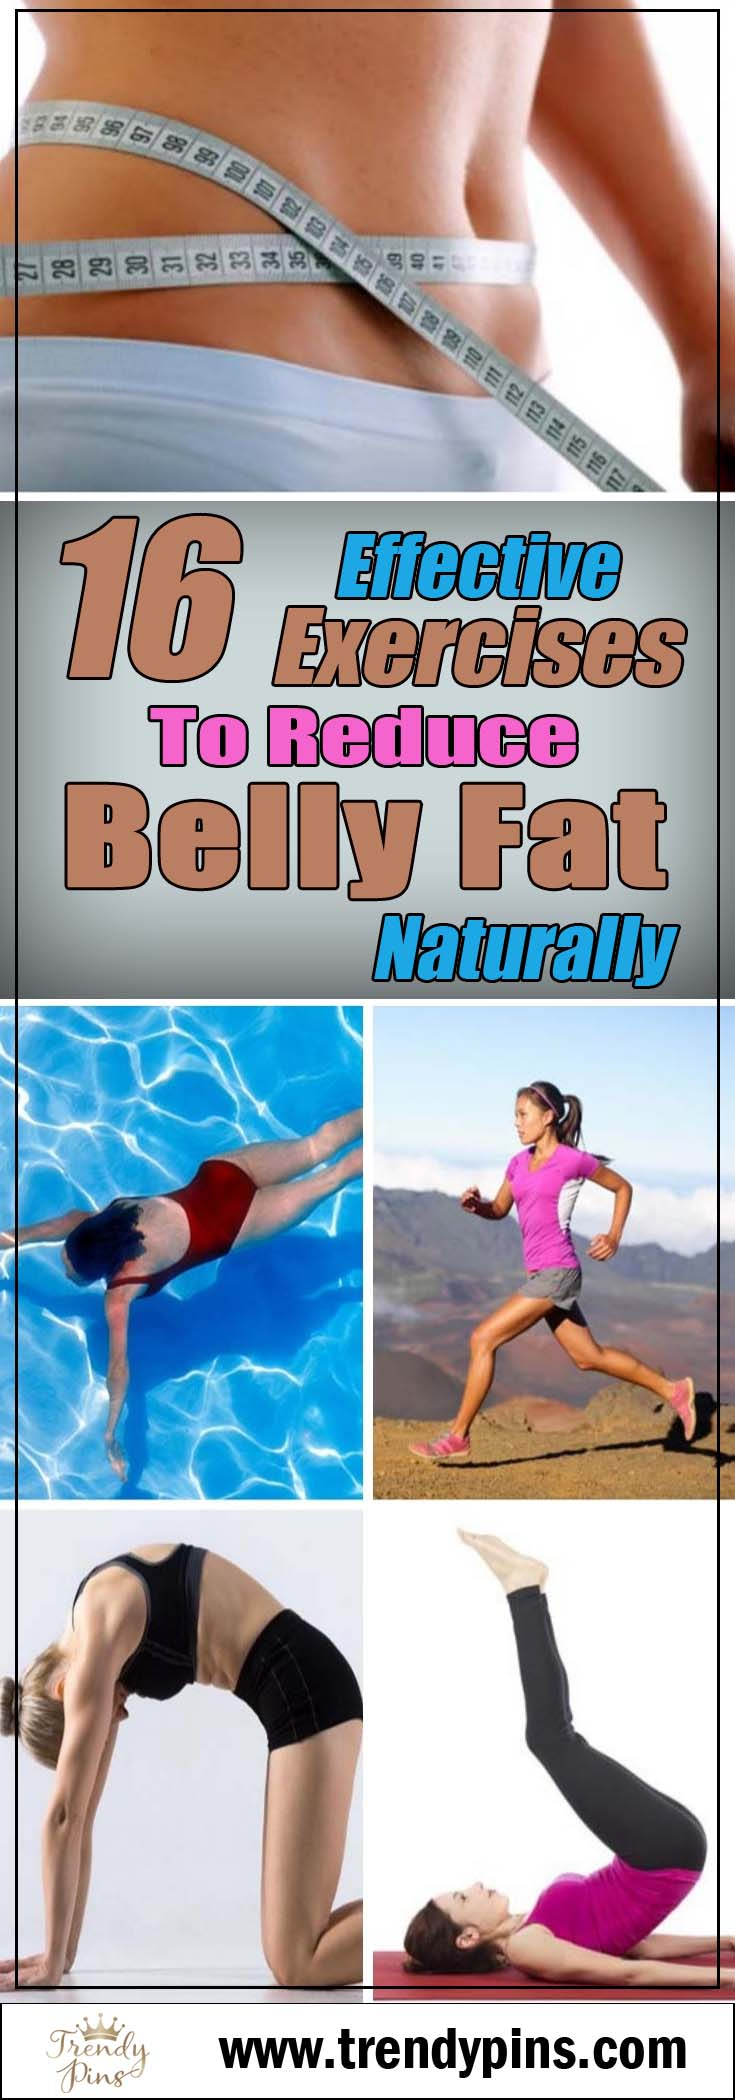 16 effective exercises to reduce belly fat naturally #Healthy living #Belly Fat #exercises #trendypins